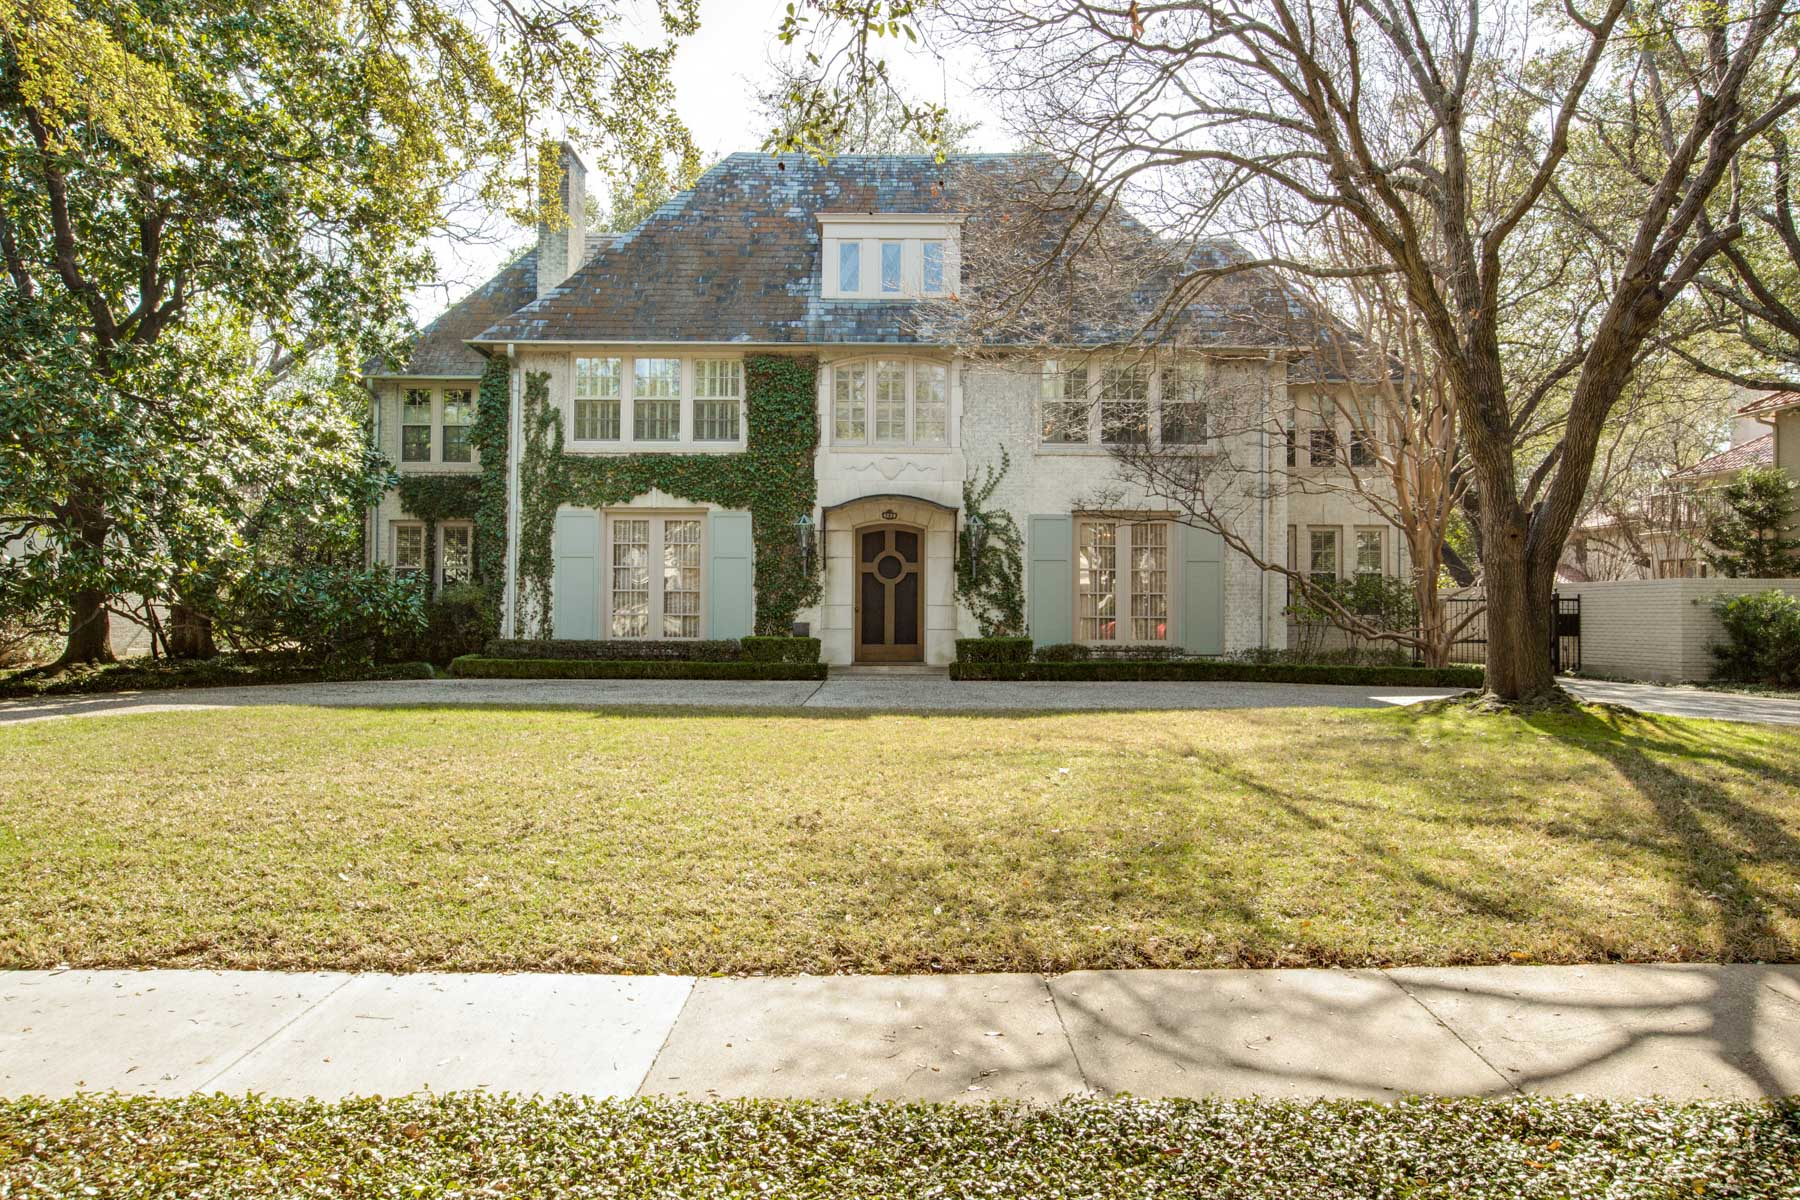 Single Family Home for Sale at Classic French Highland Park Gem 4229 Arcady Ave Dallas, Texas, 75205 United States